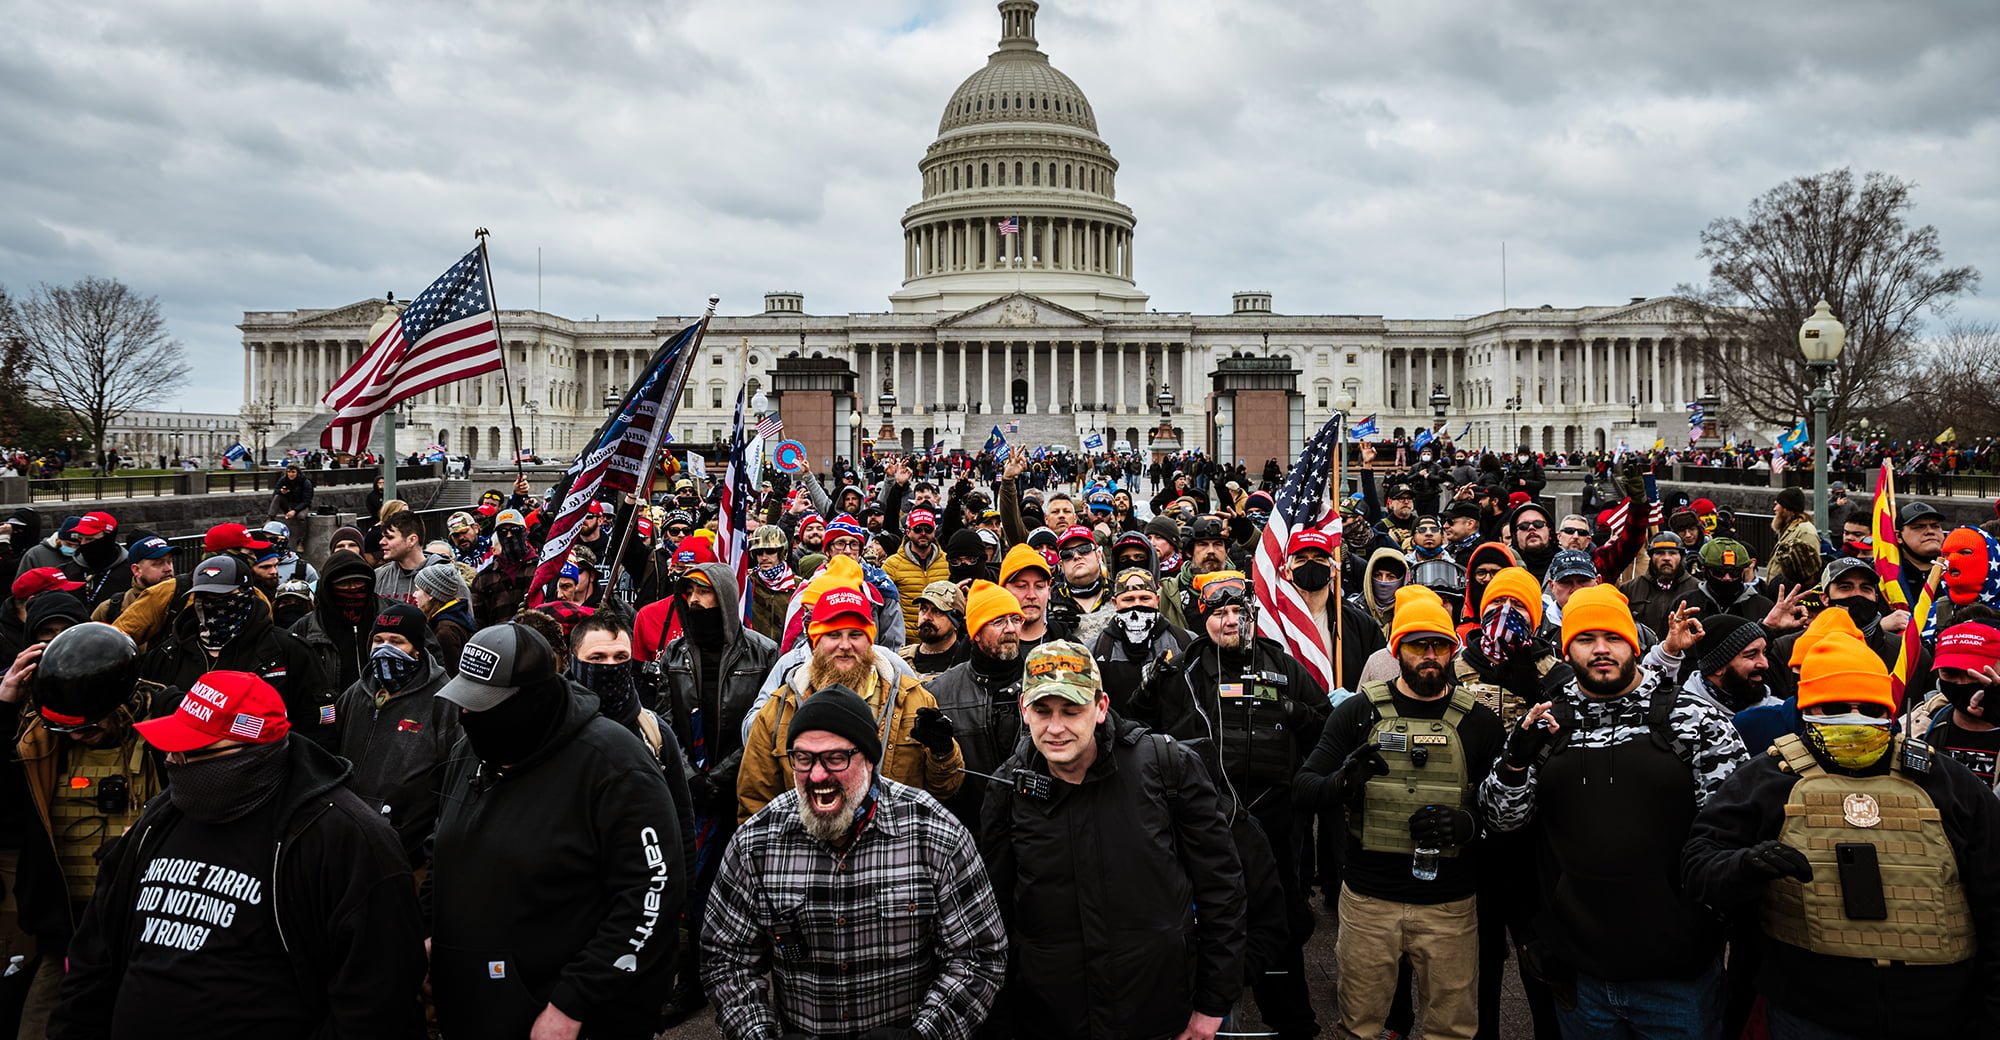 CRE Groups Condemn Mob Attack on U.S. Capitol